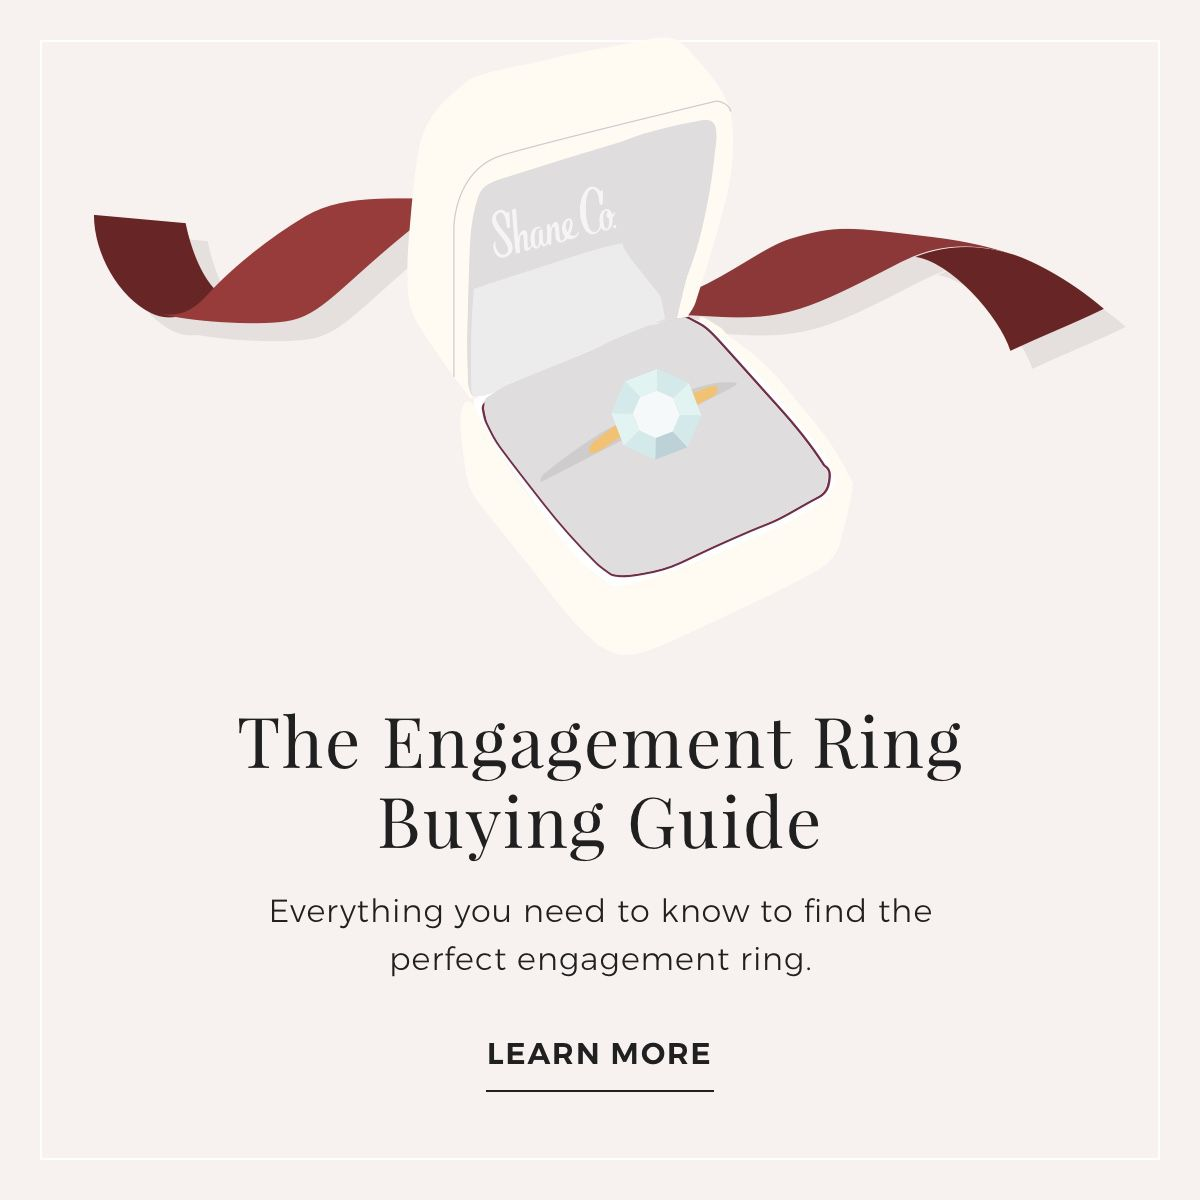 Mobile Image for Engagement Ring Buying Guide